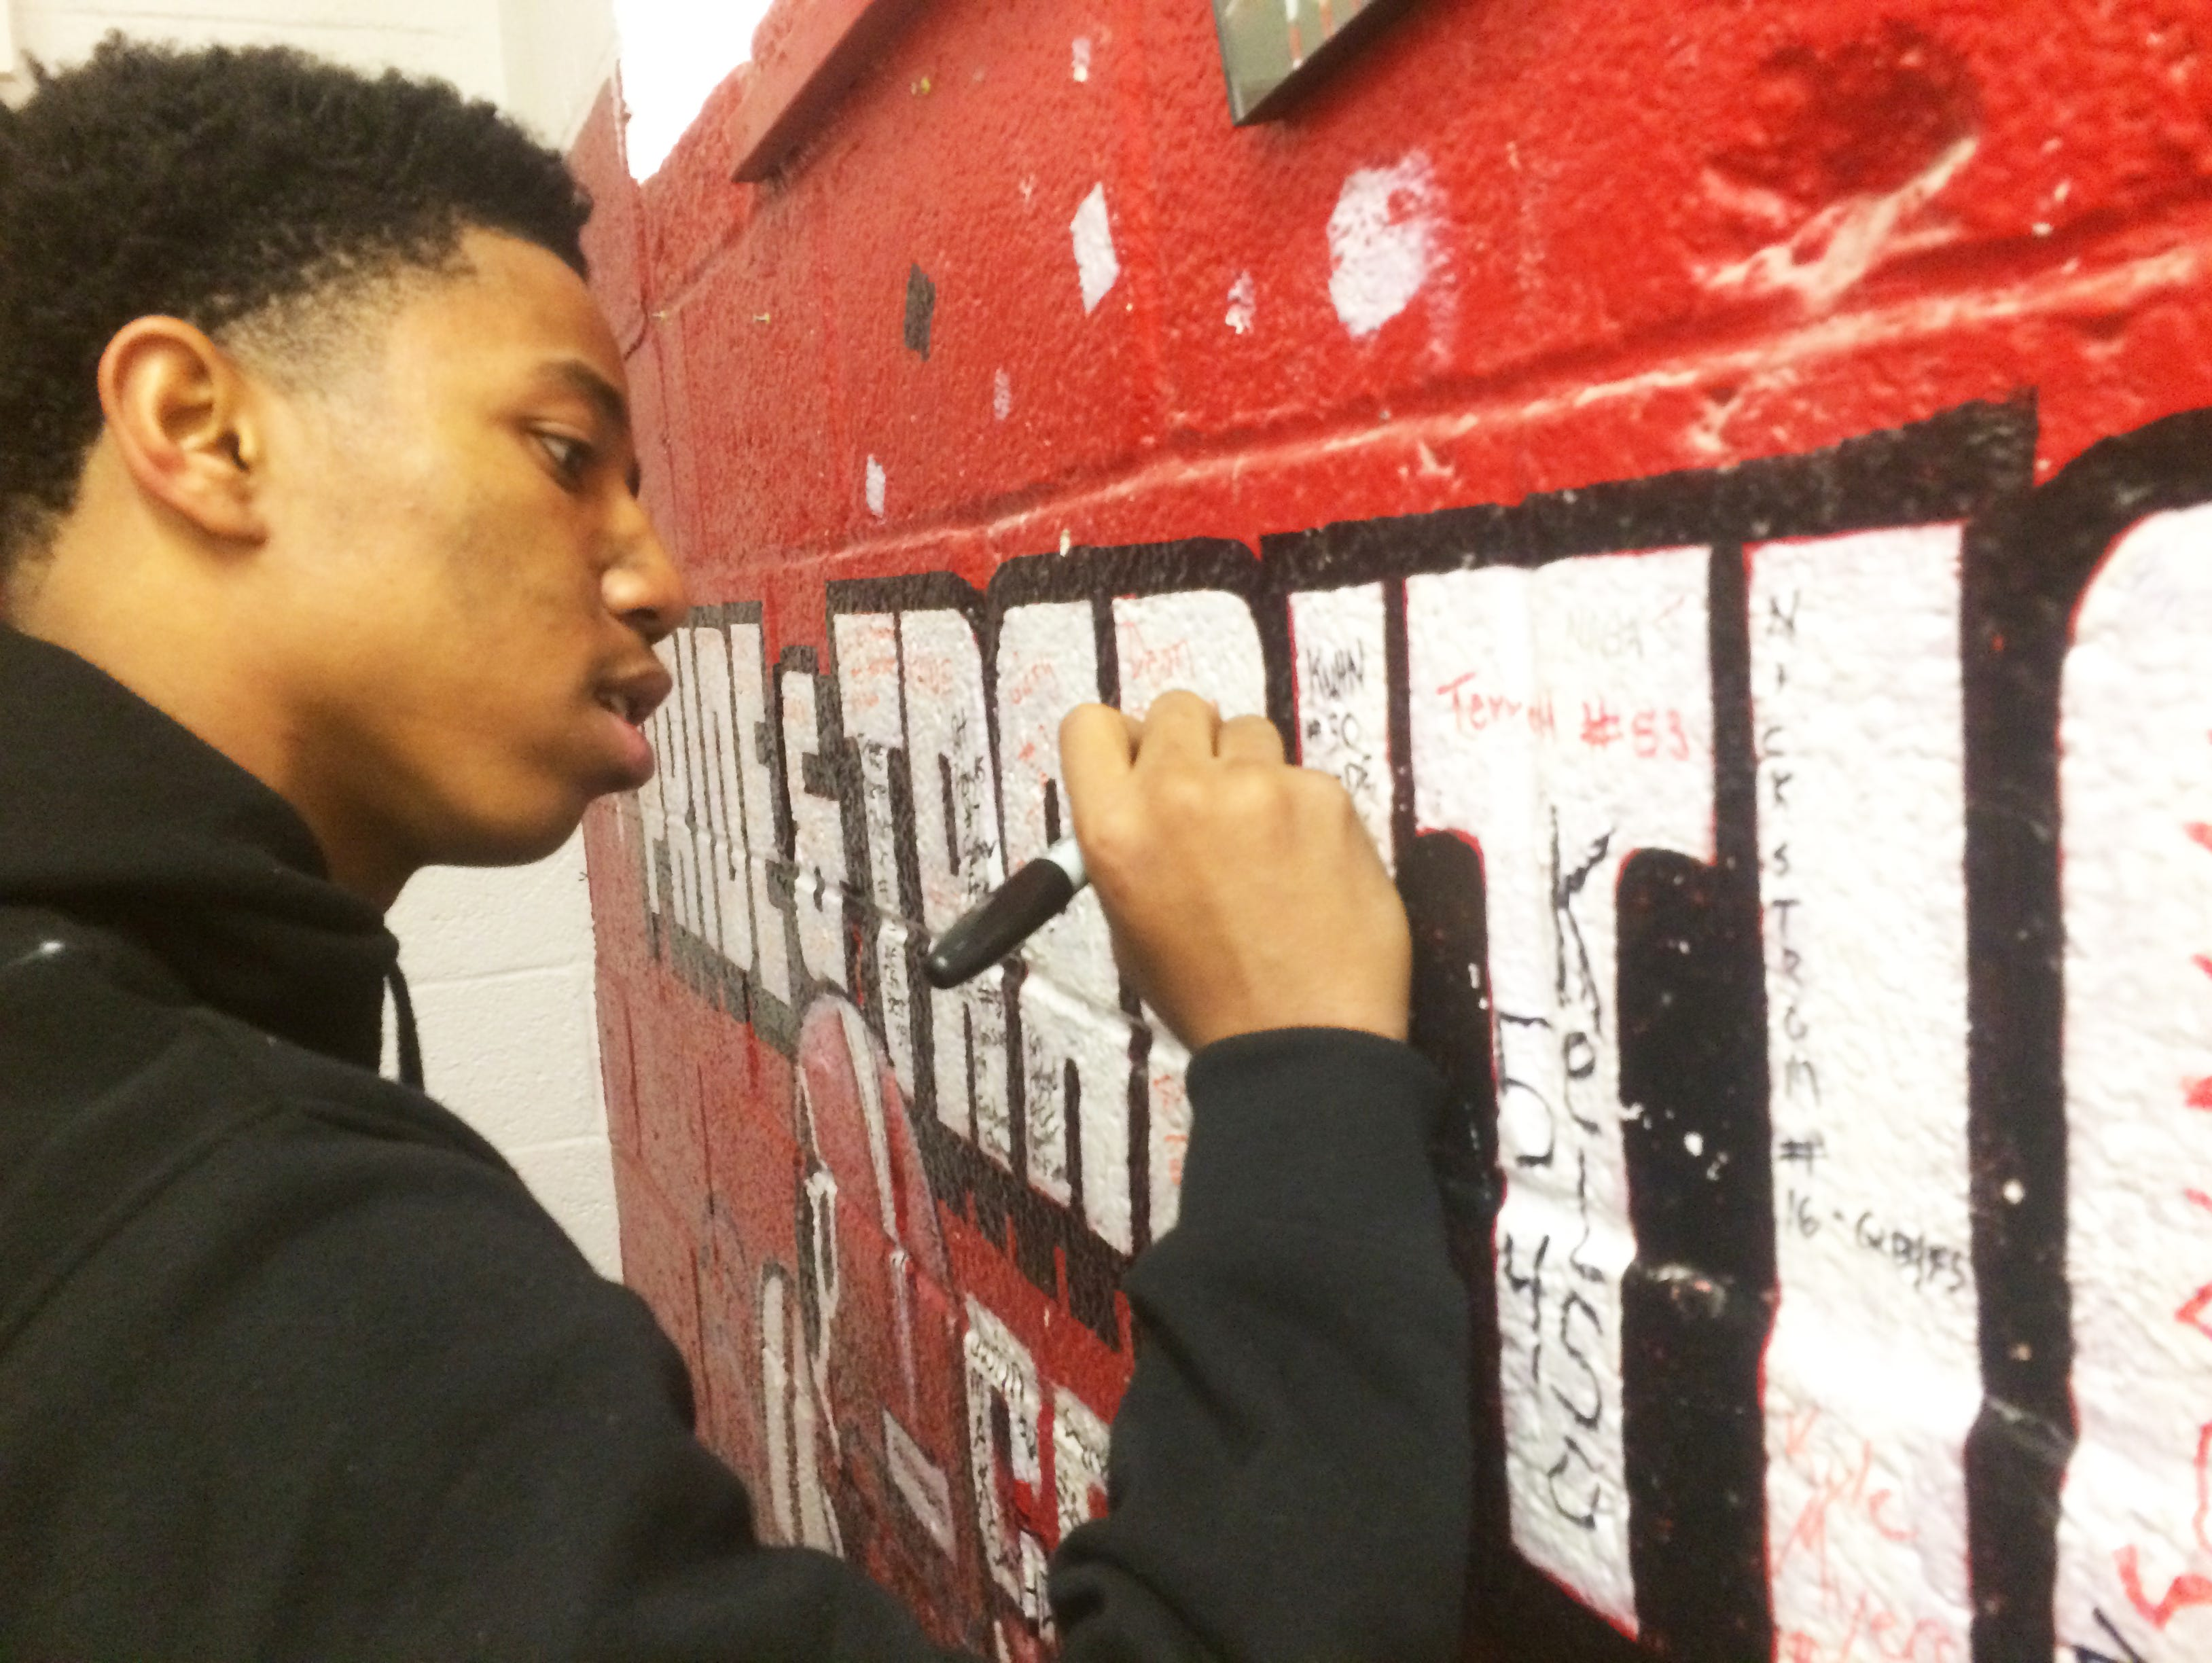 Palmrya High School defensive back/wide receiver Terry Bailey signs his name on the Panthers' locker room wall after the team's Central Jersey Group 1 loss to Shore Regional on Dec. 5.